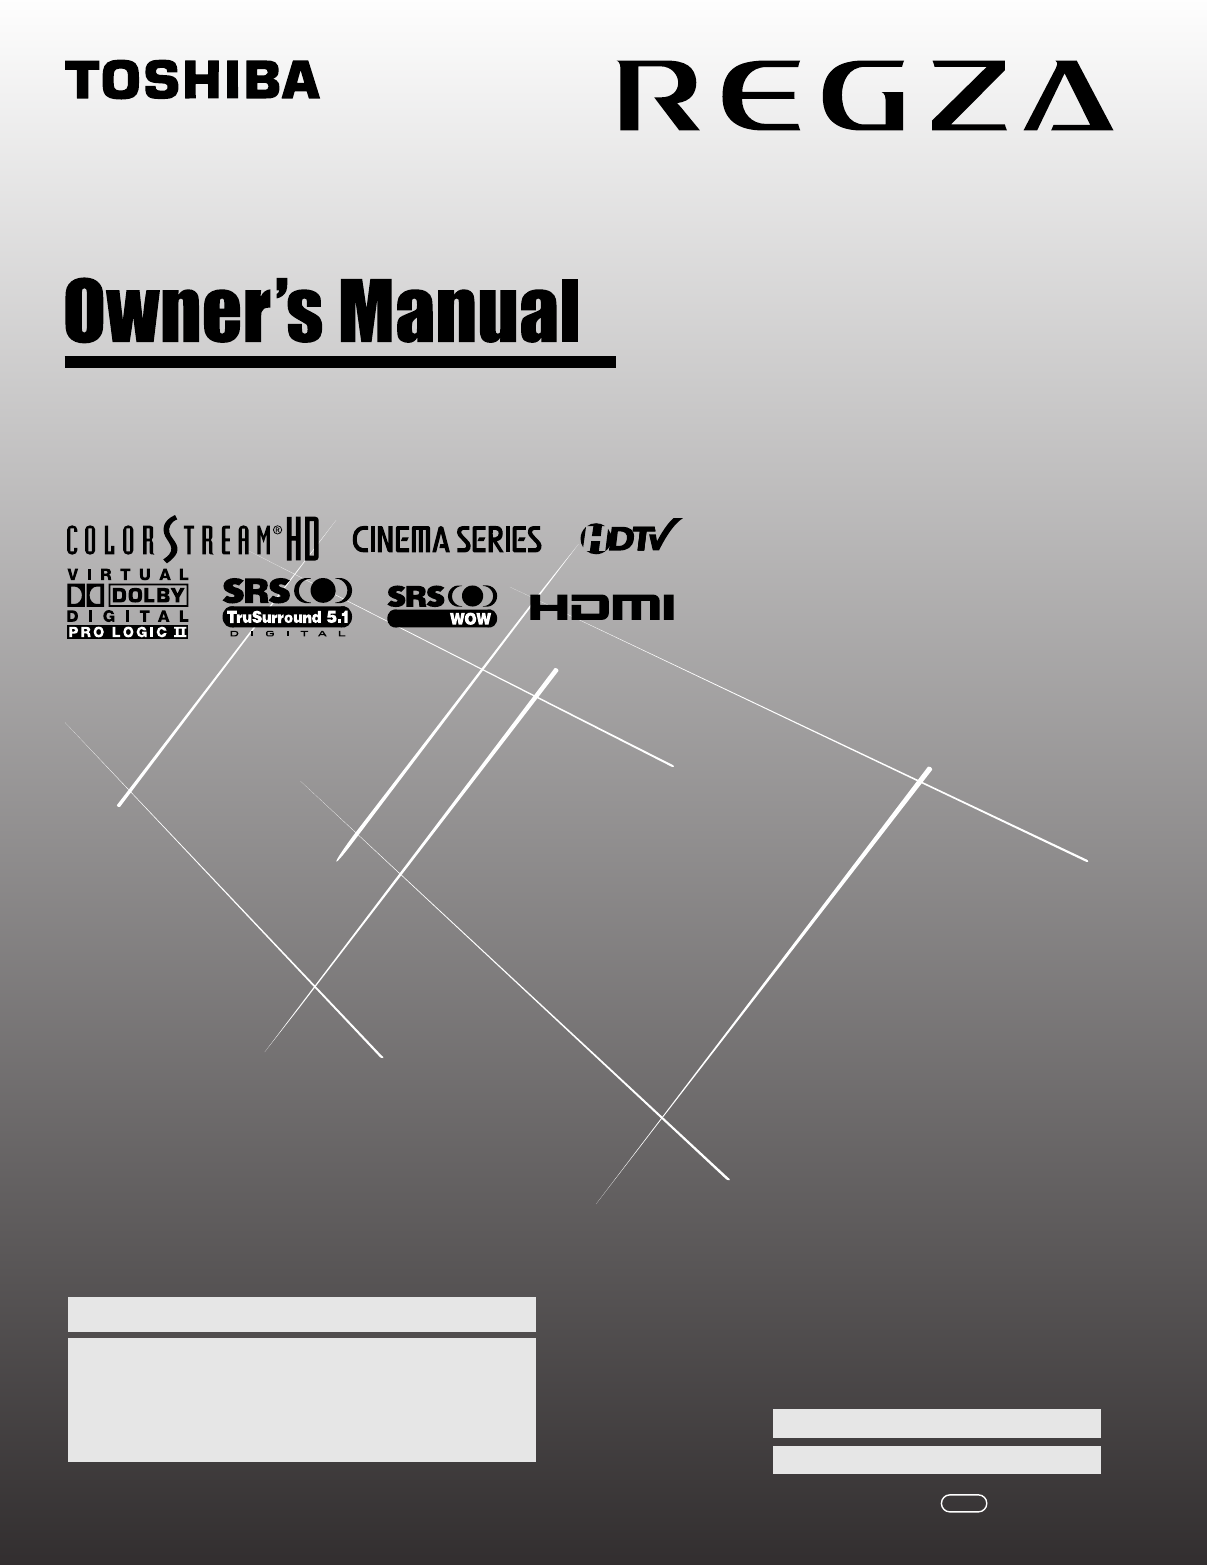 toshiba flat panel television 42lx177 user guide manualsonline com rh tv manualsonline com Toshiba Regza Manual PDF Toshiba Regza 32 Manual